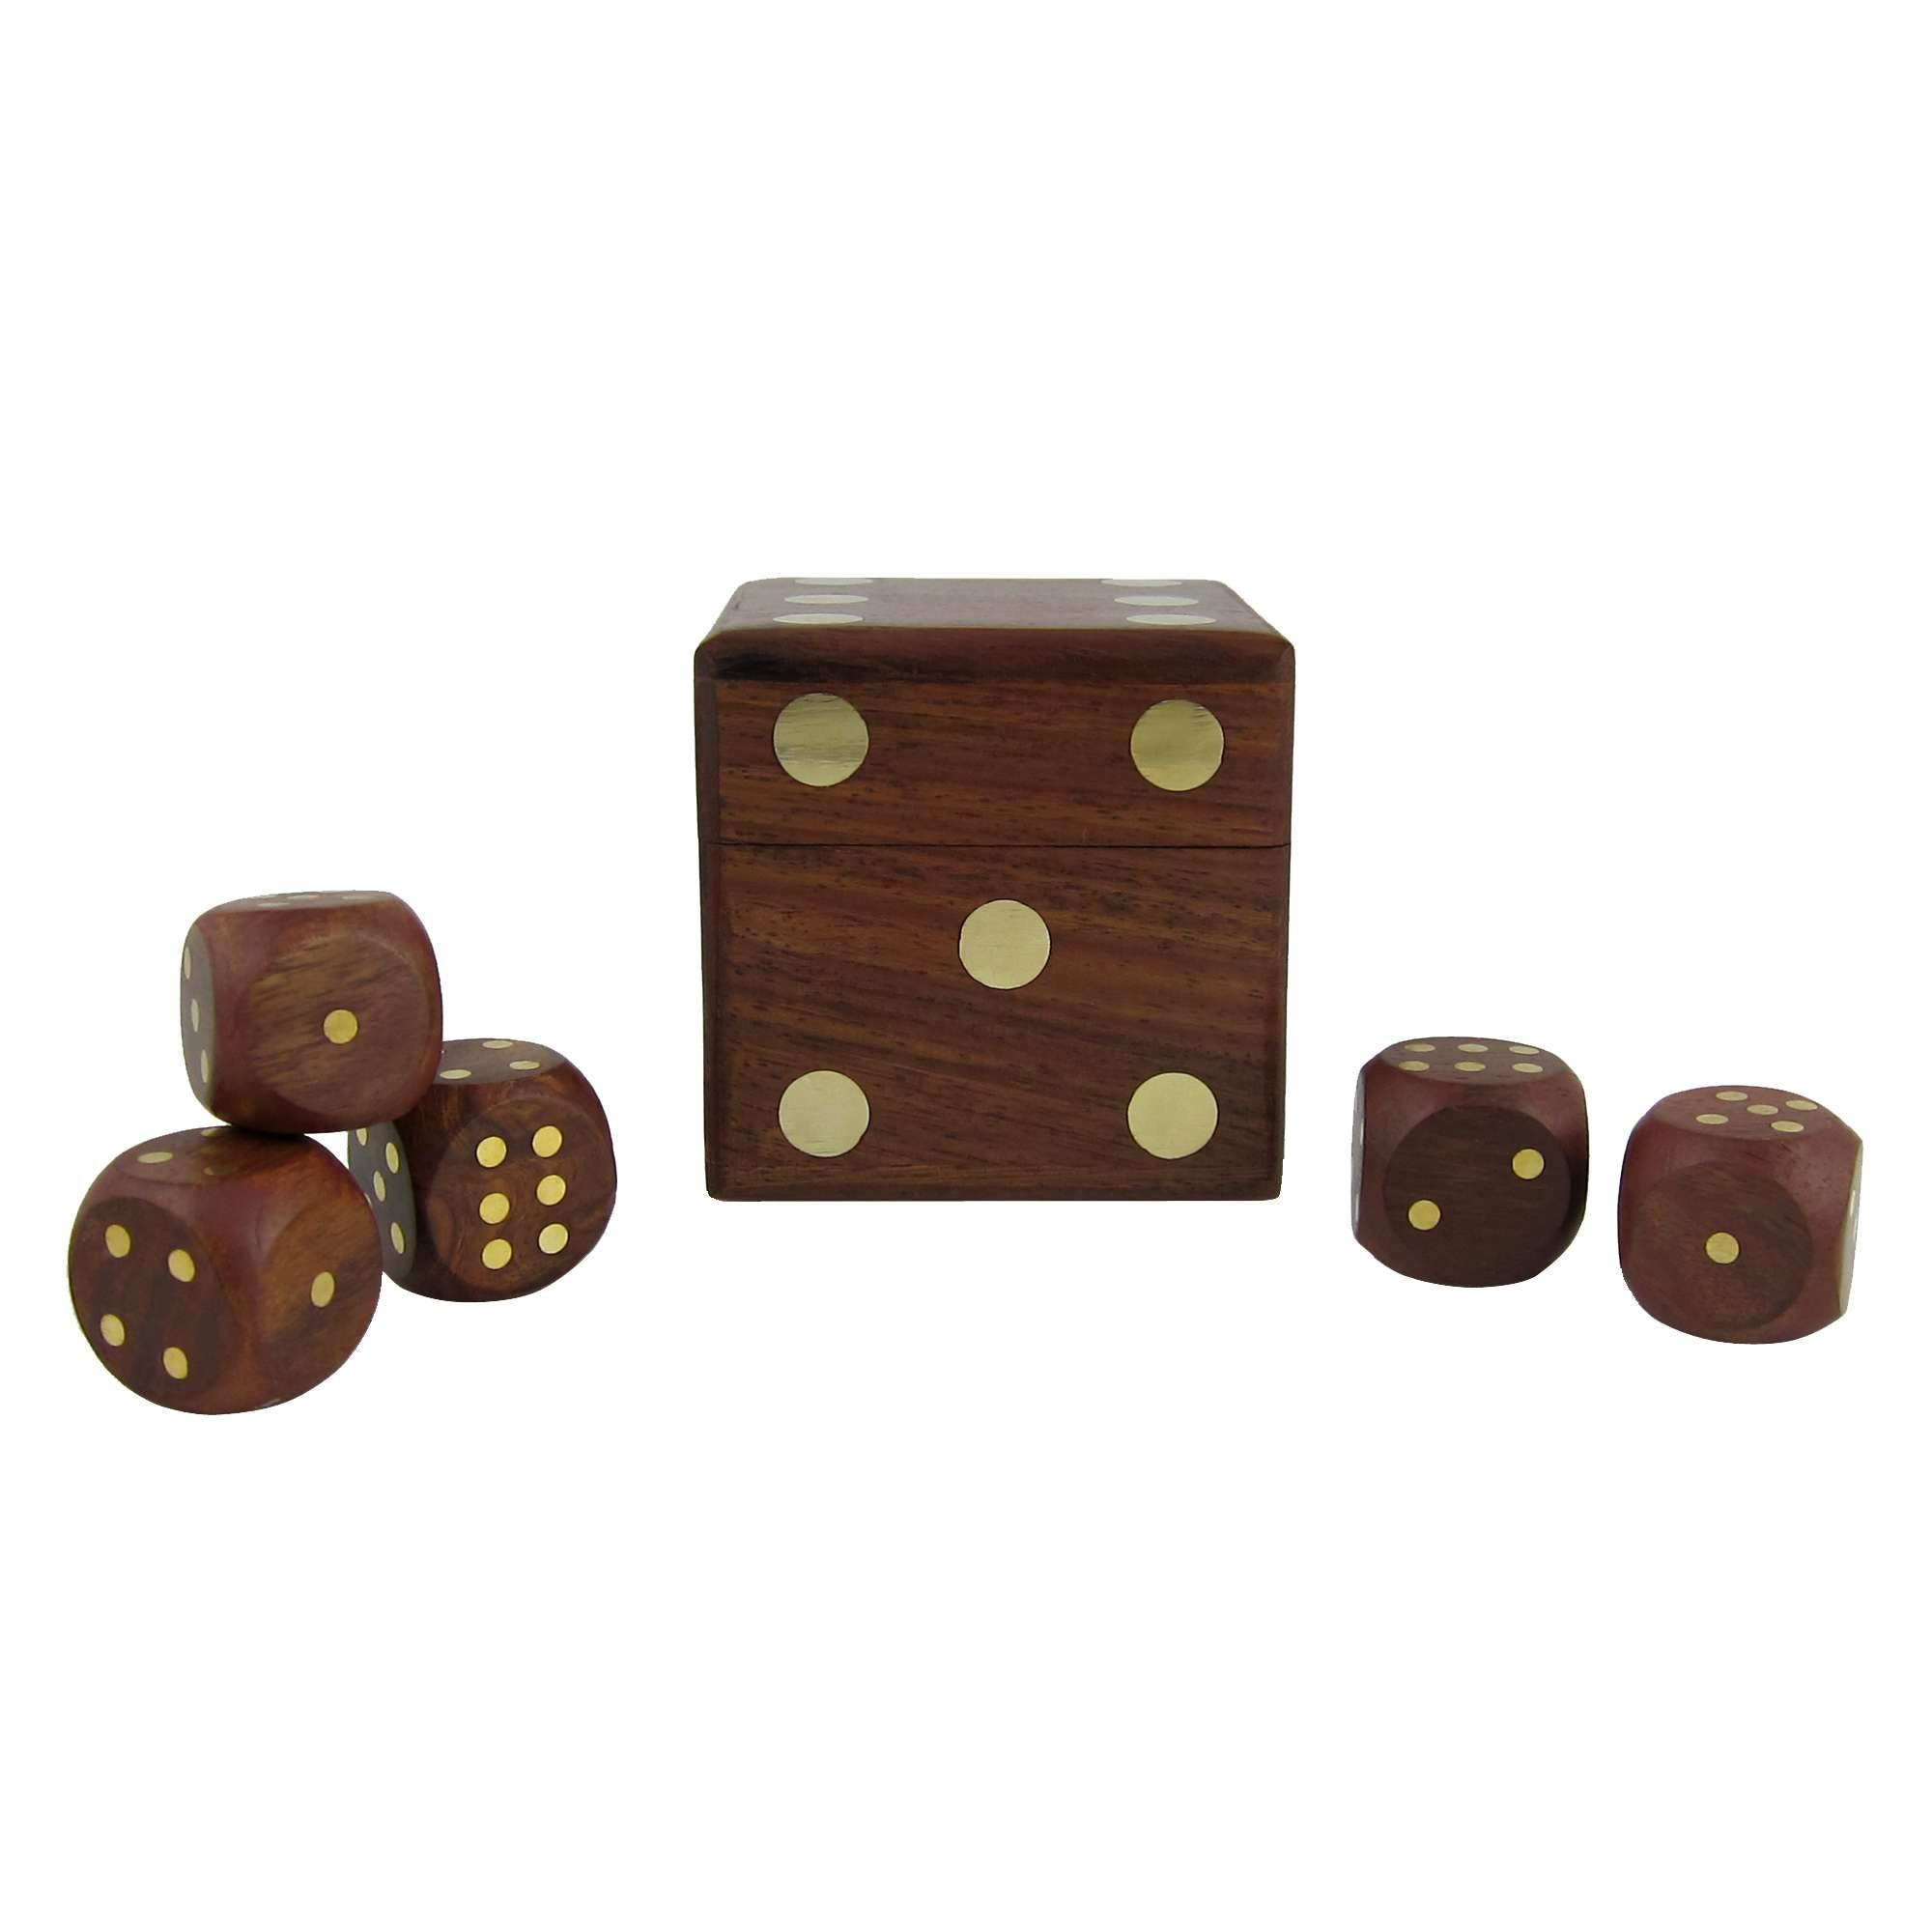 48 Units of ShalinIndia Wooden 5 Piece Dice Games Gifts Set with Decoration Storage Box